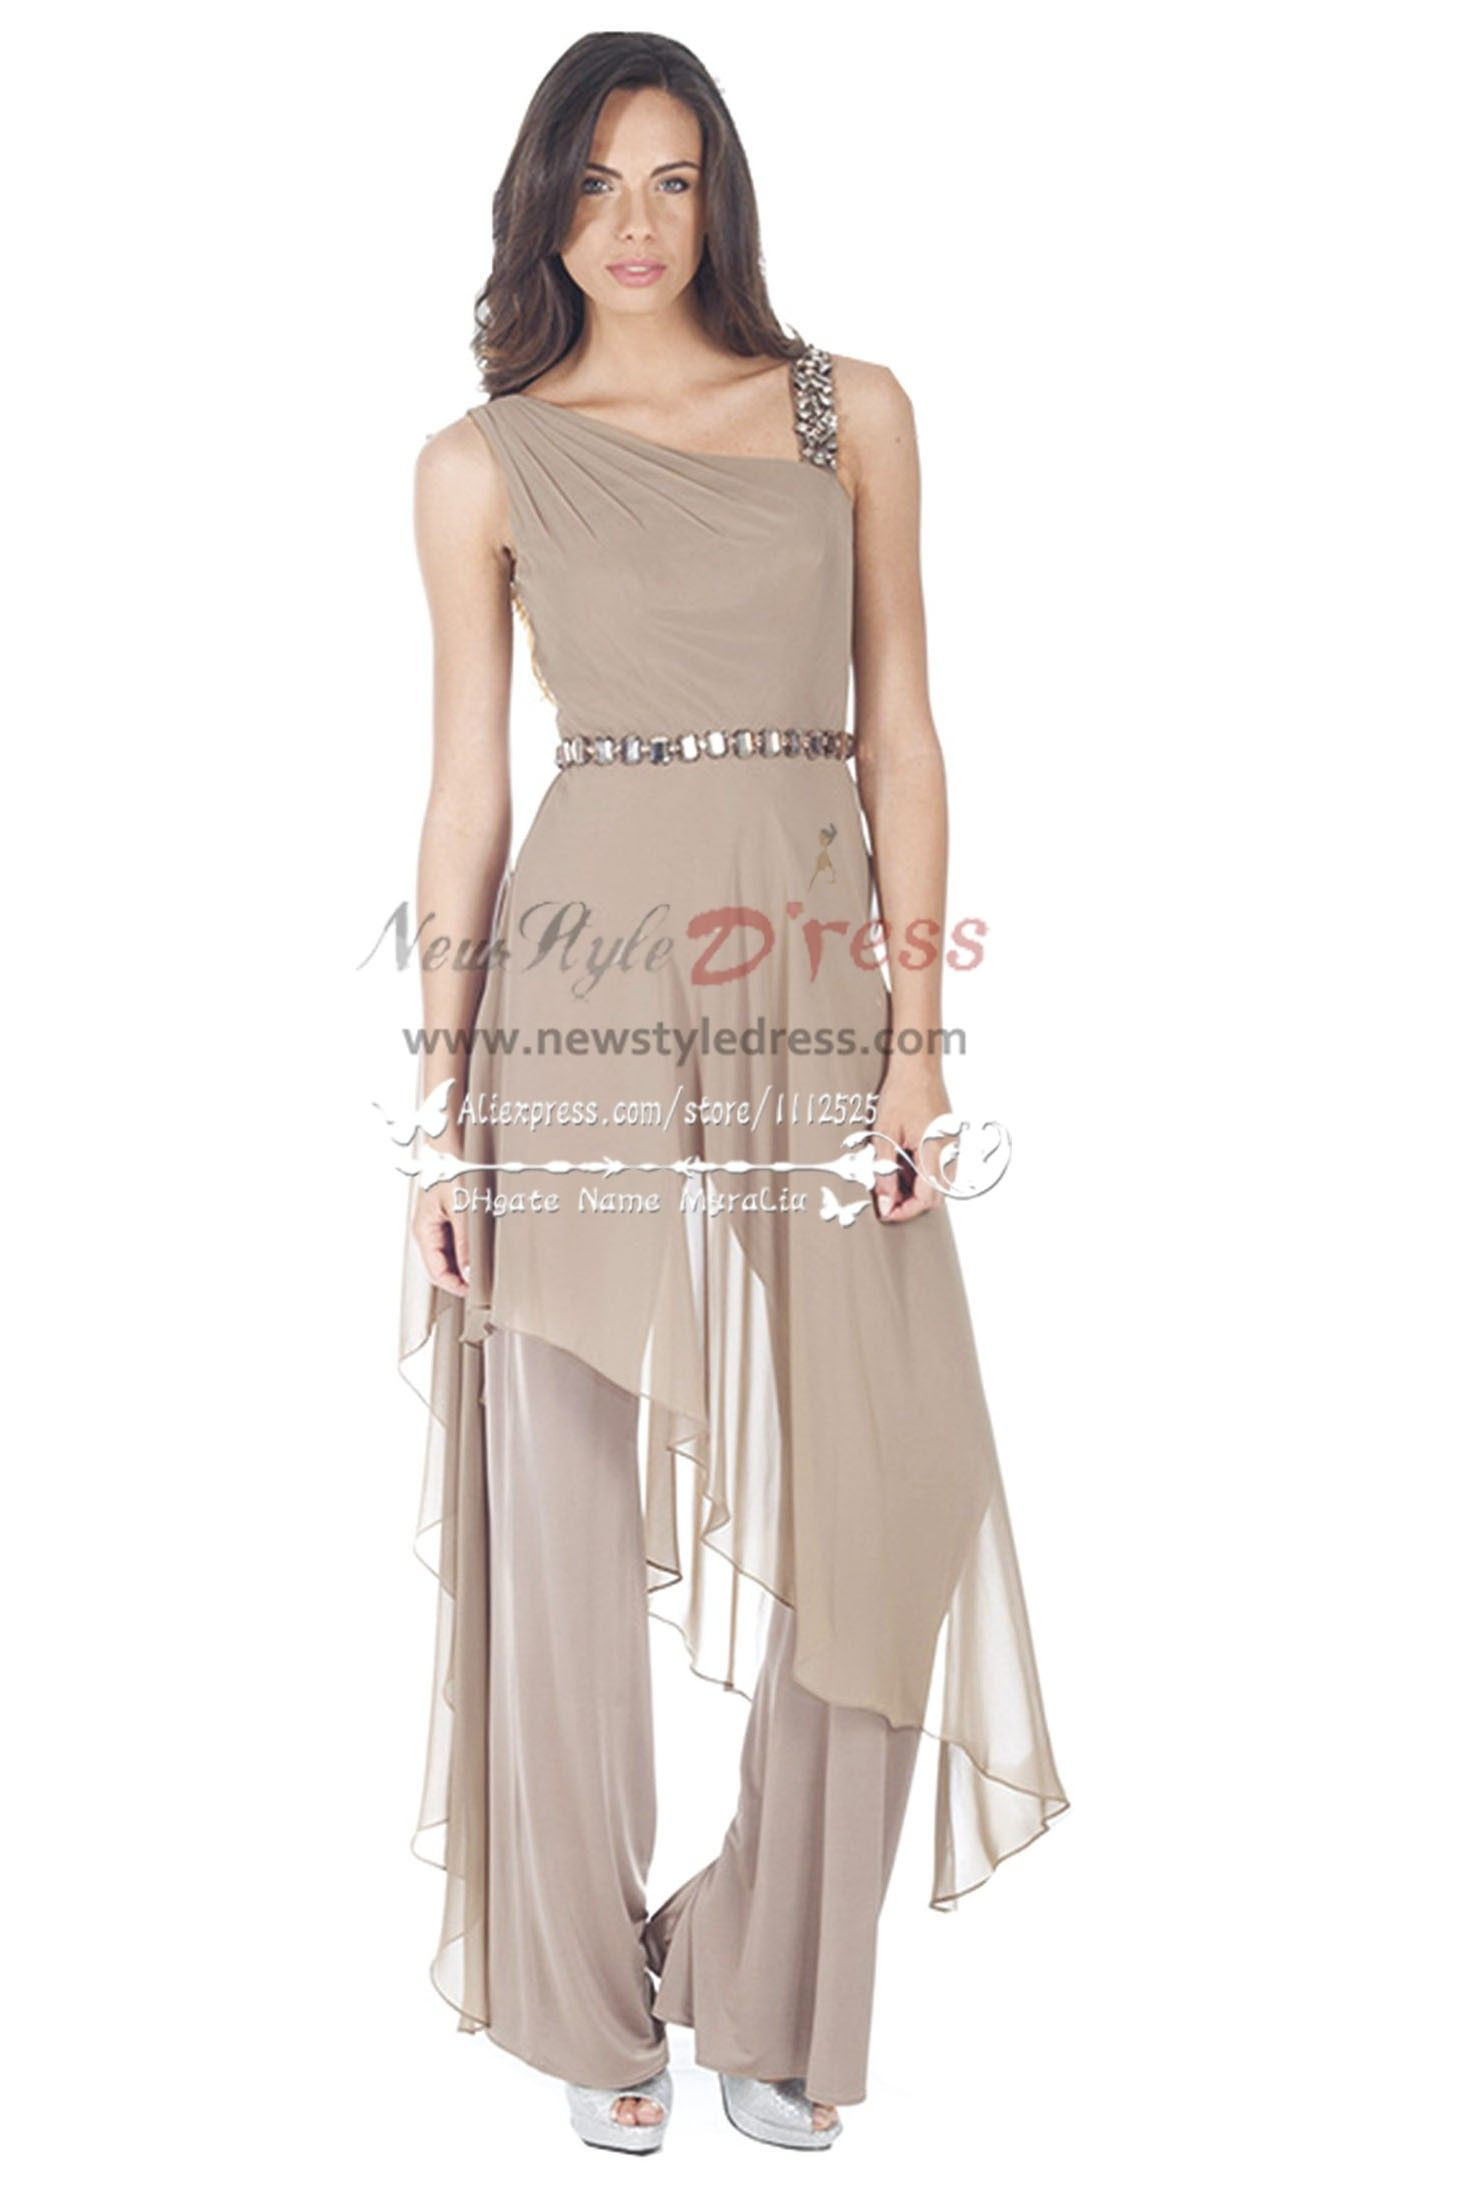 Fashion Gray Chiffon Jumpsuit With Crystal For Wedding Party Women S Dress Pant Suits